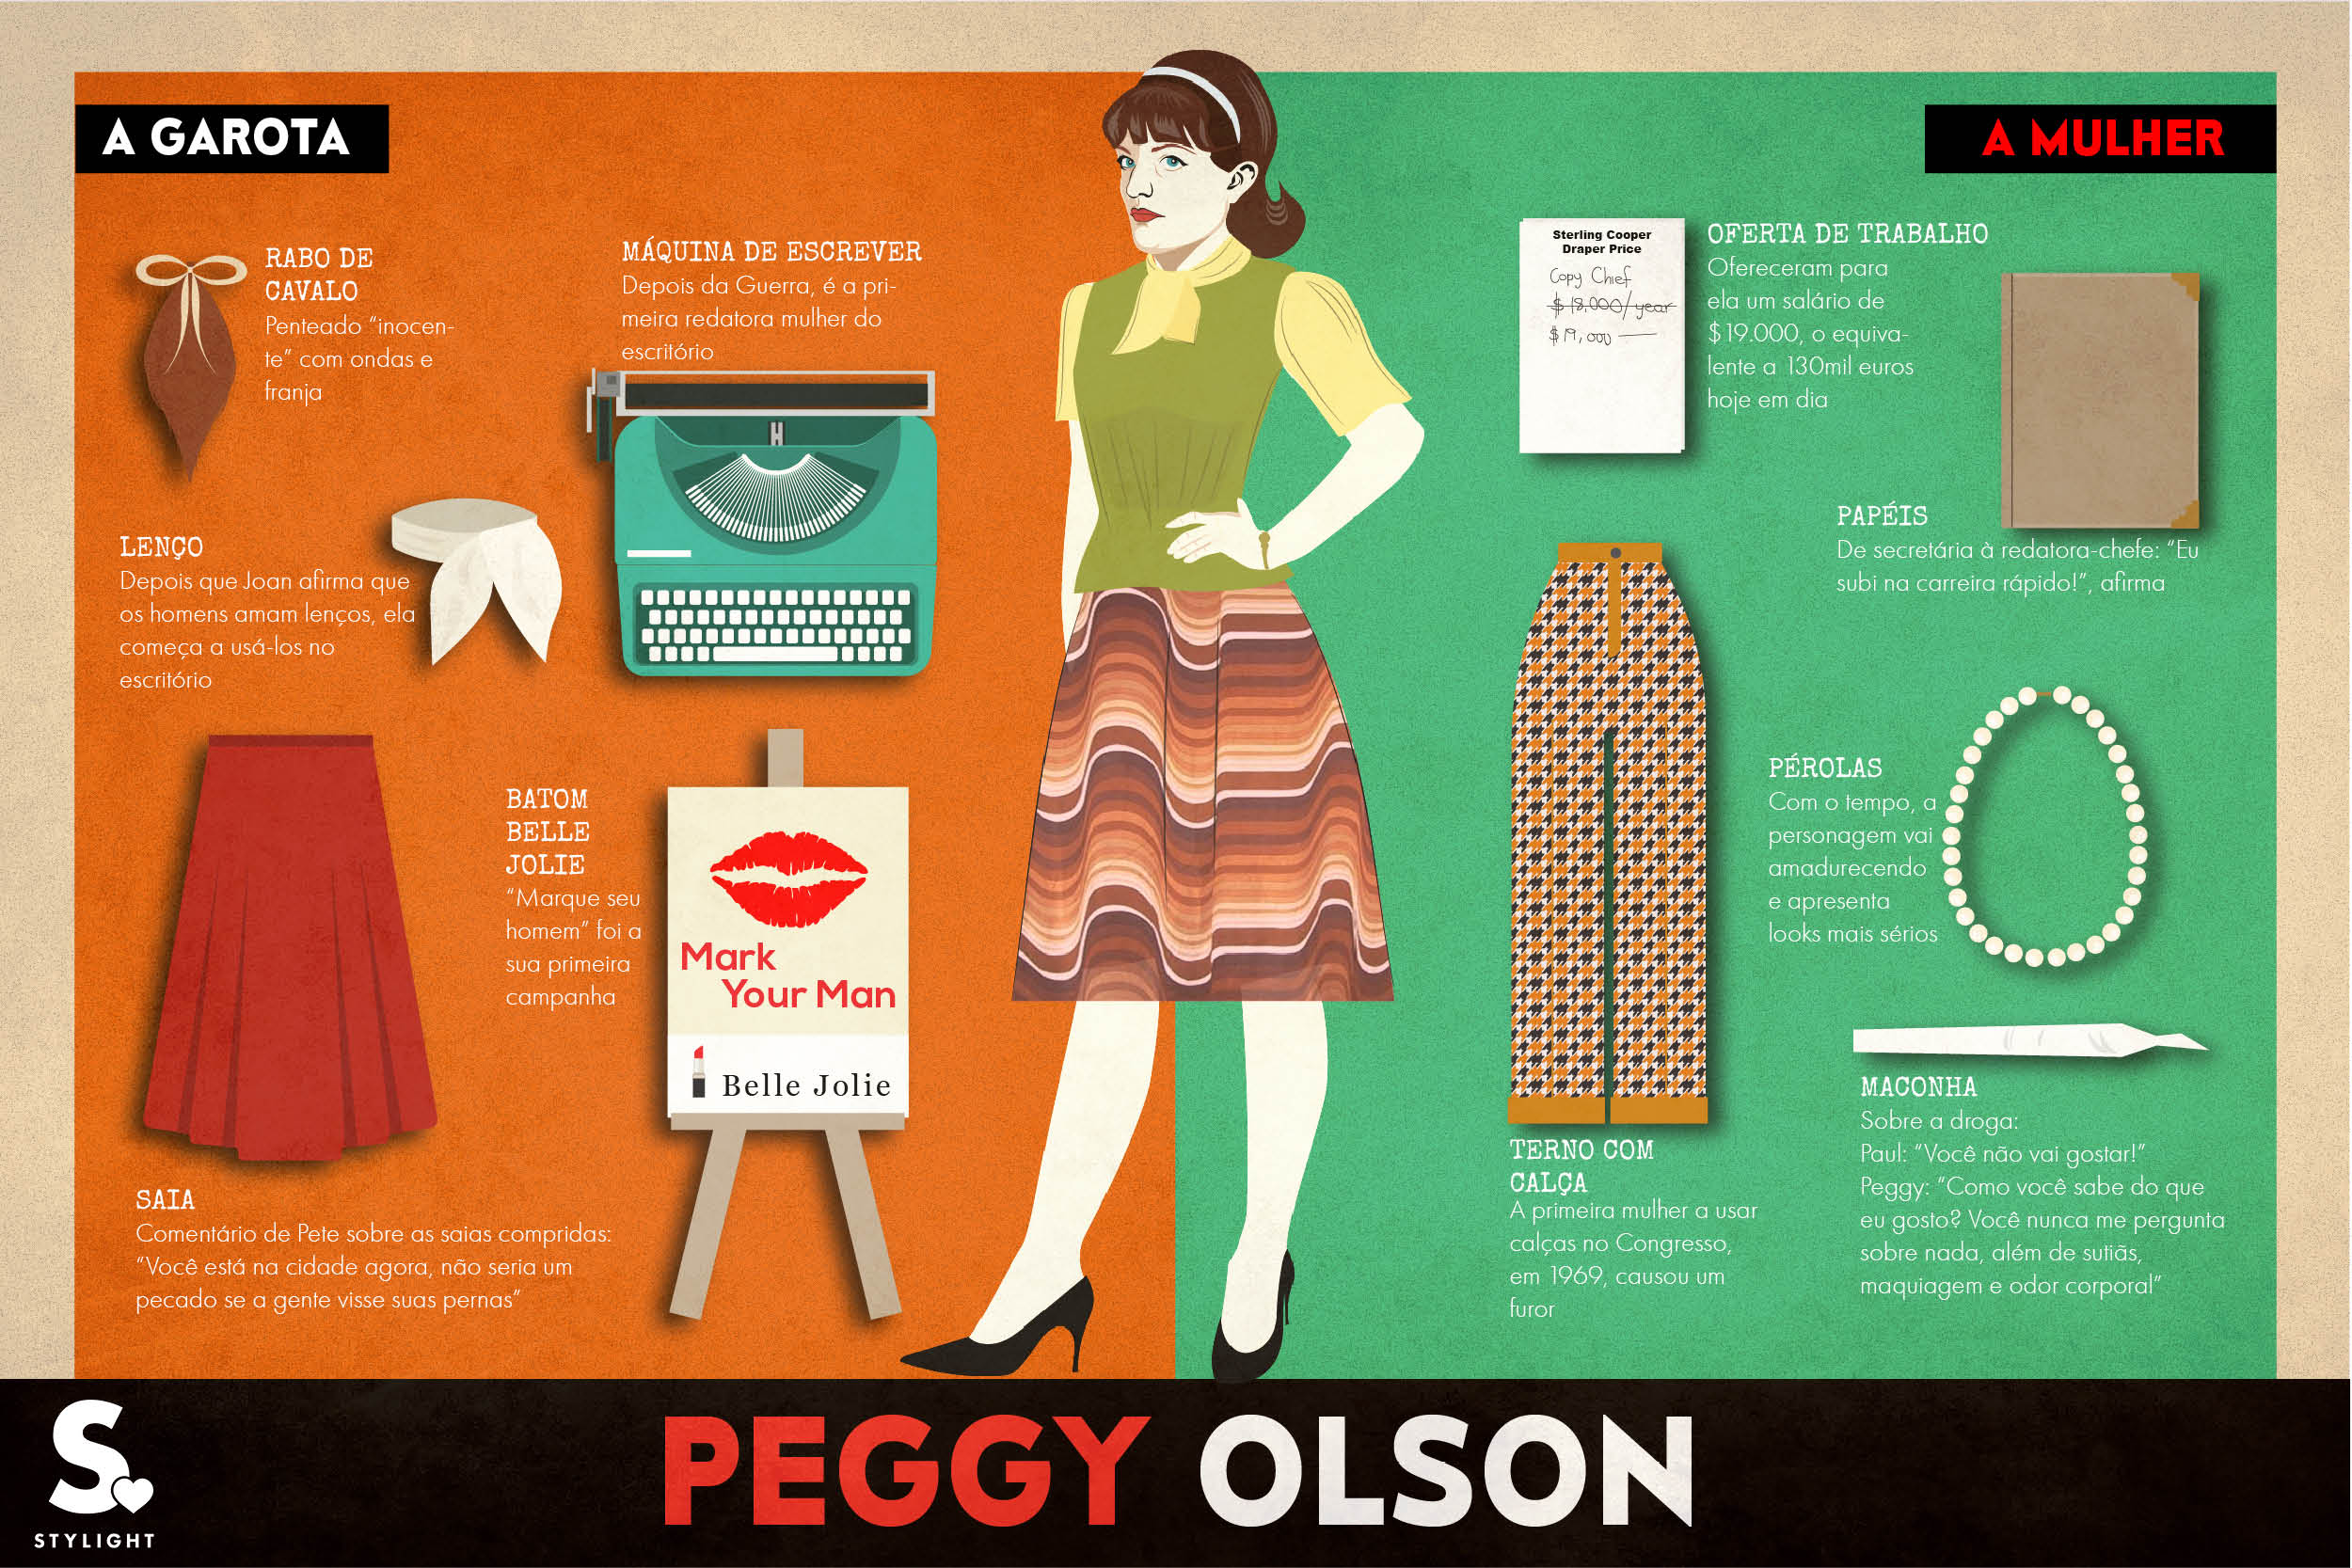 INFOGRÁFICO MAD MEN